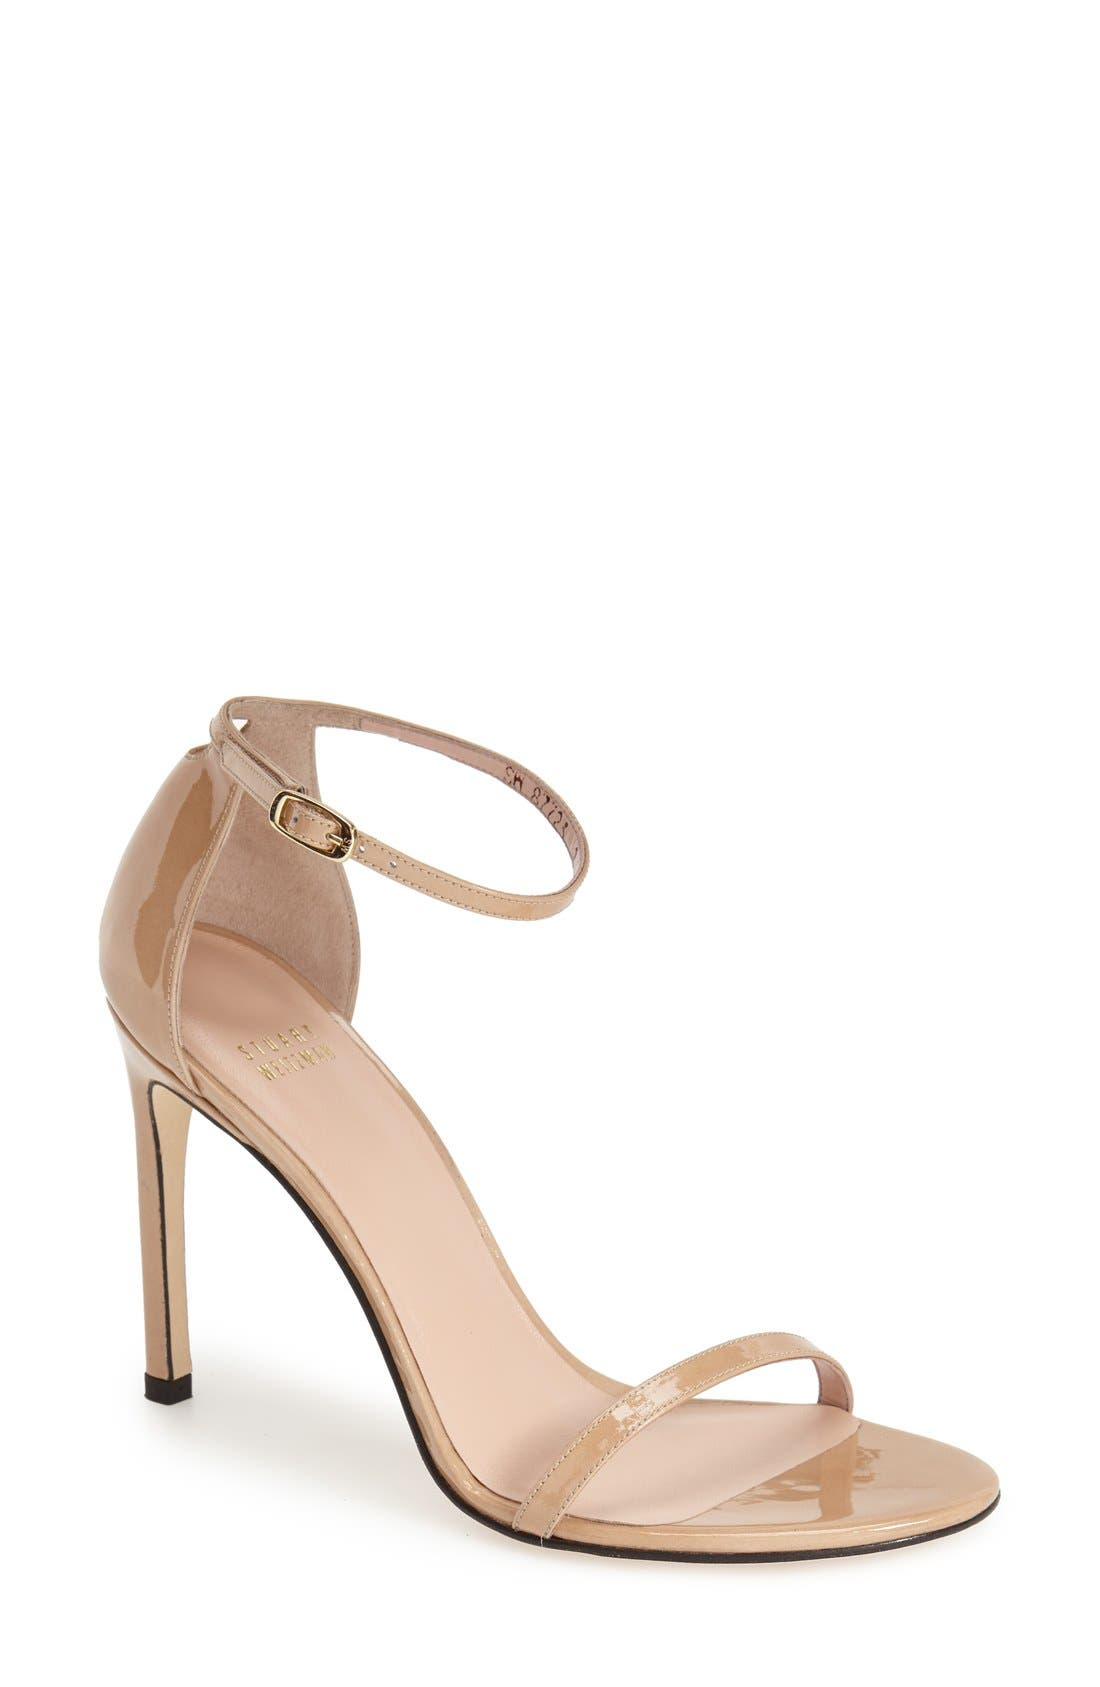 Alternate Image 1 Selected - Stuart Weitzman Nudistsong Ankle Strap Sandal (Women)